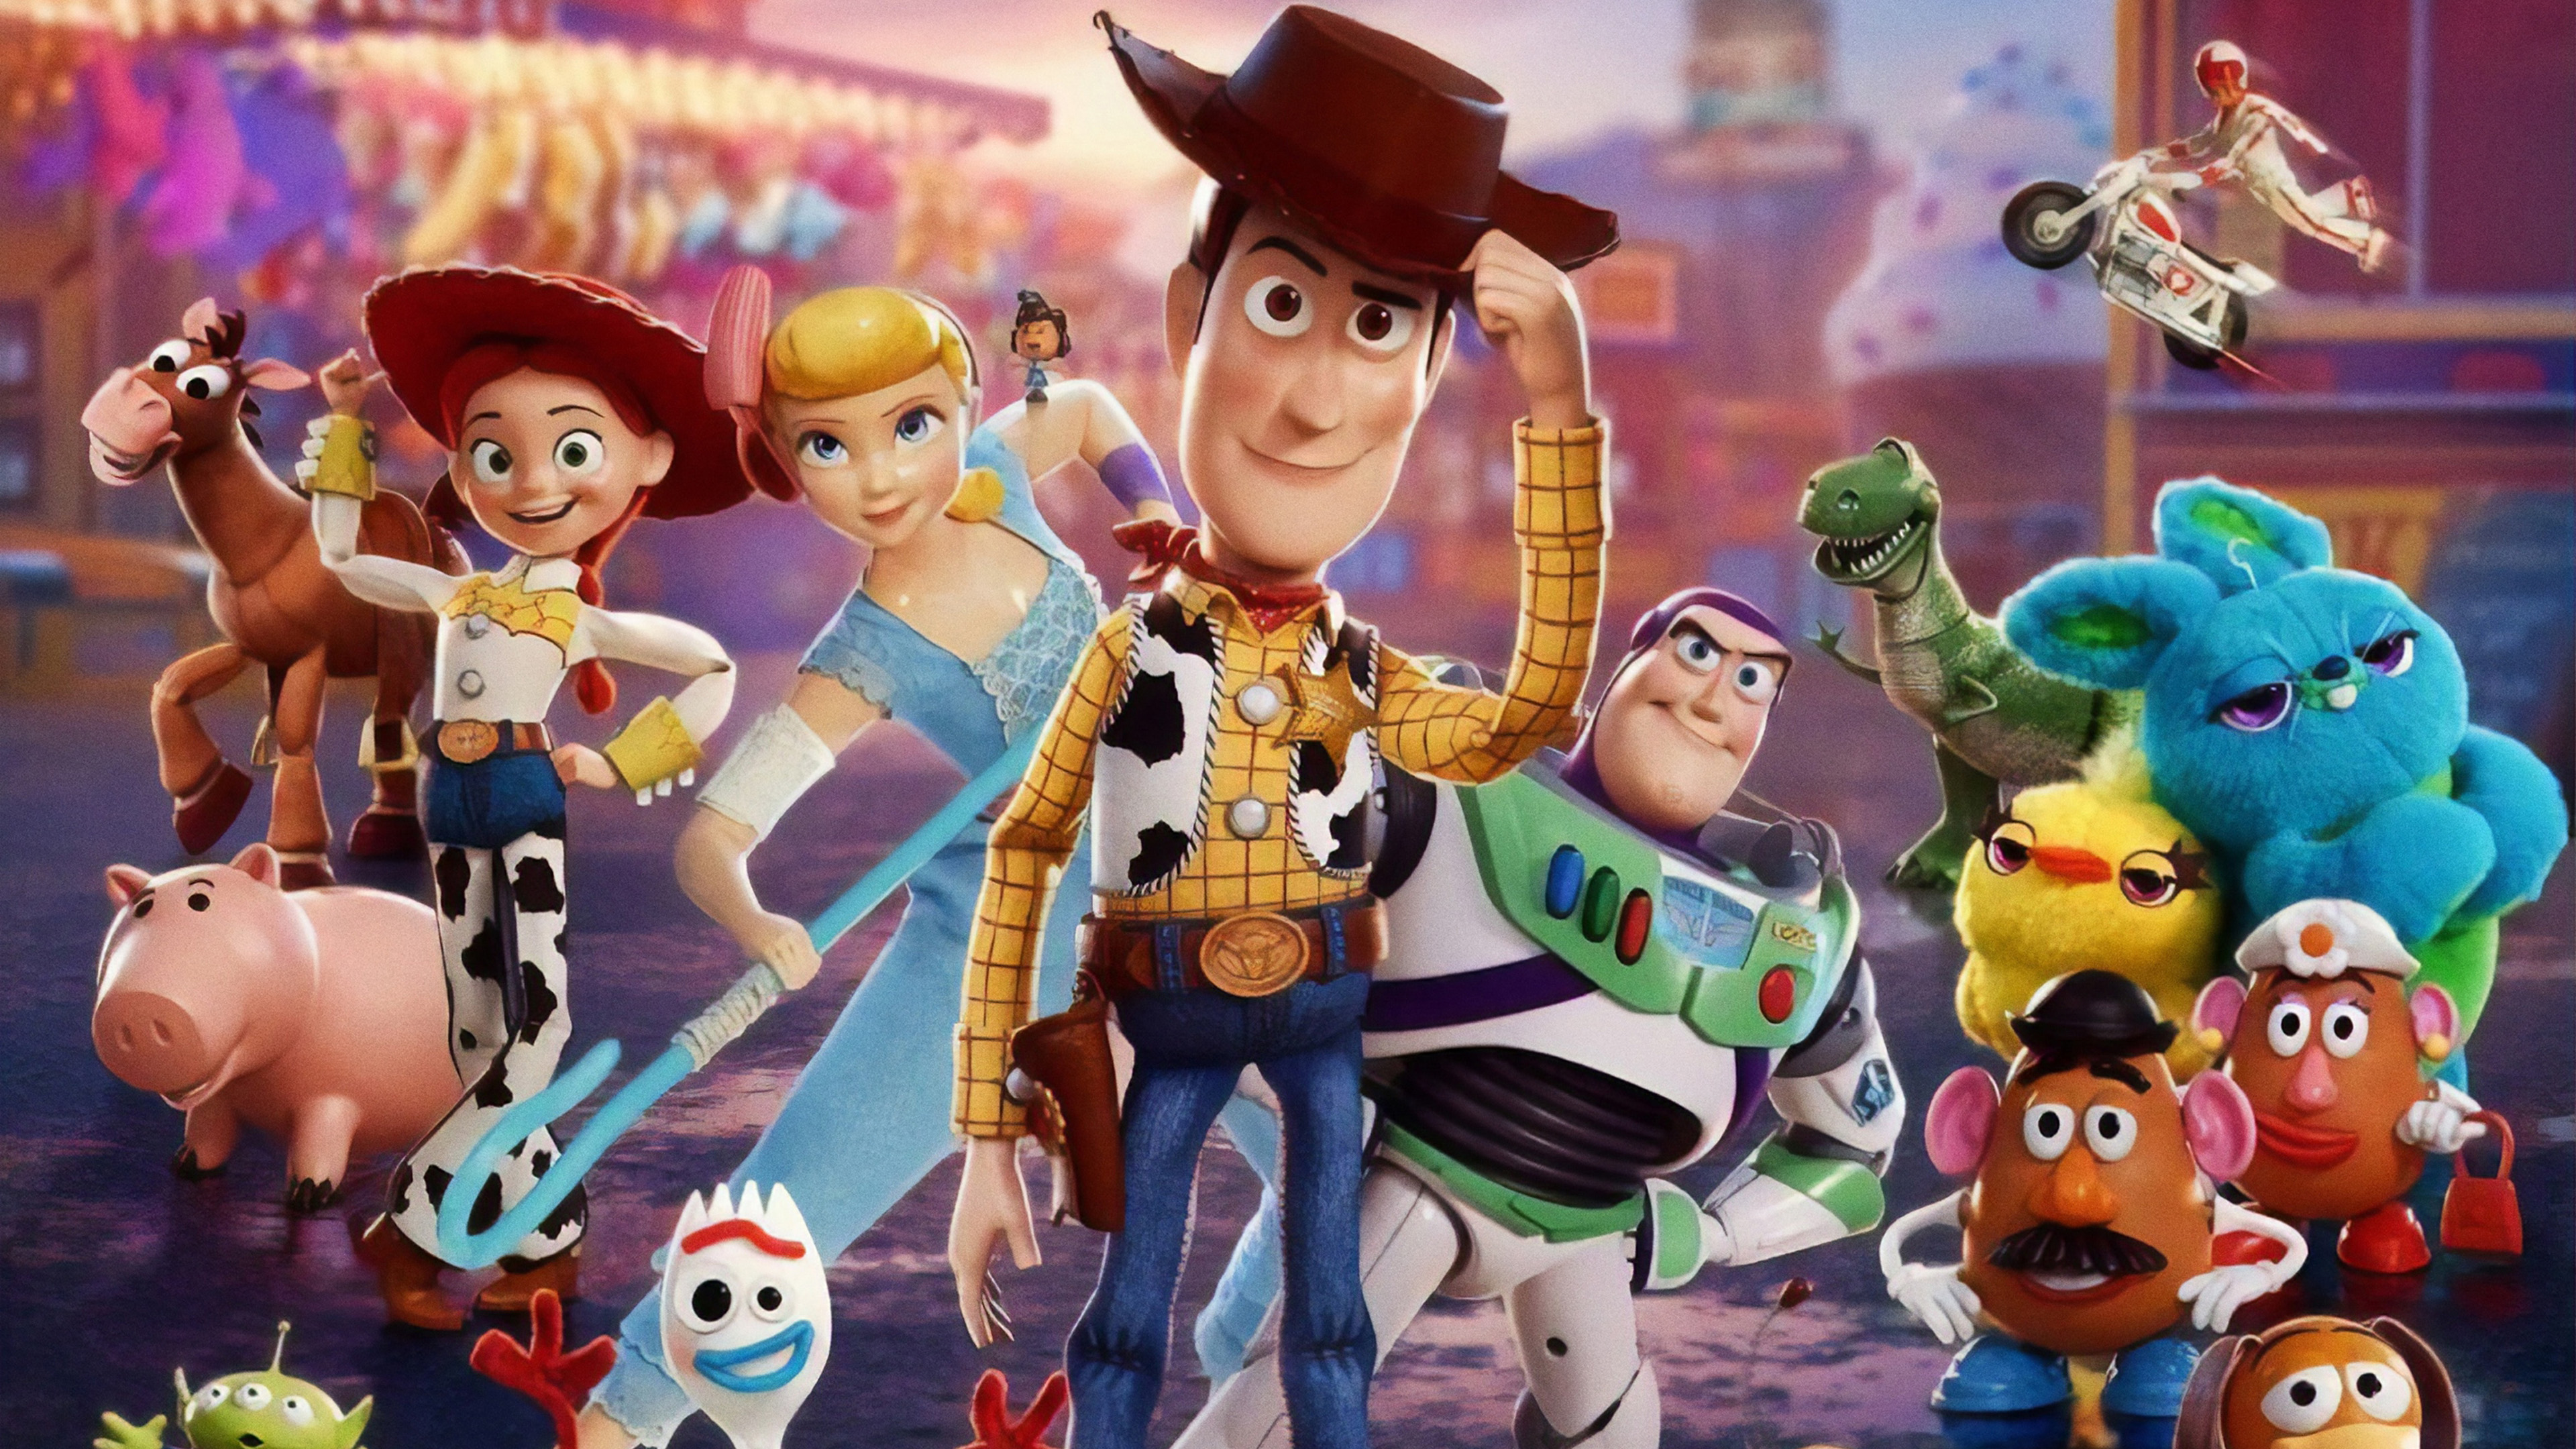 Toy Story 4 HD Wallpaper 4K for Desktop